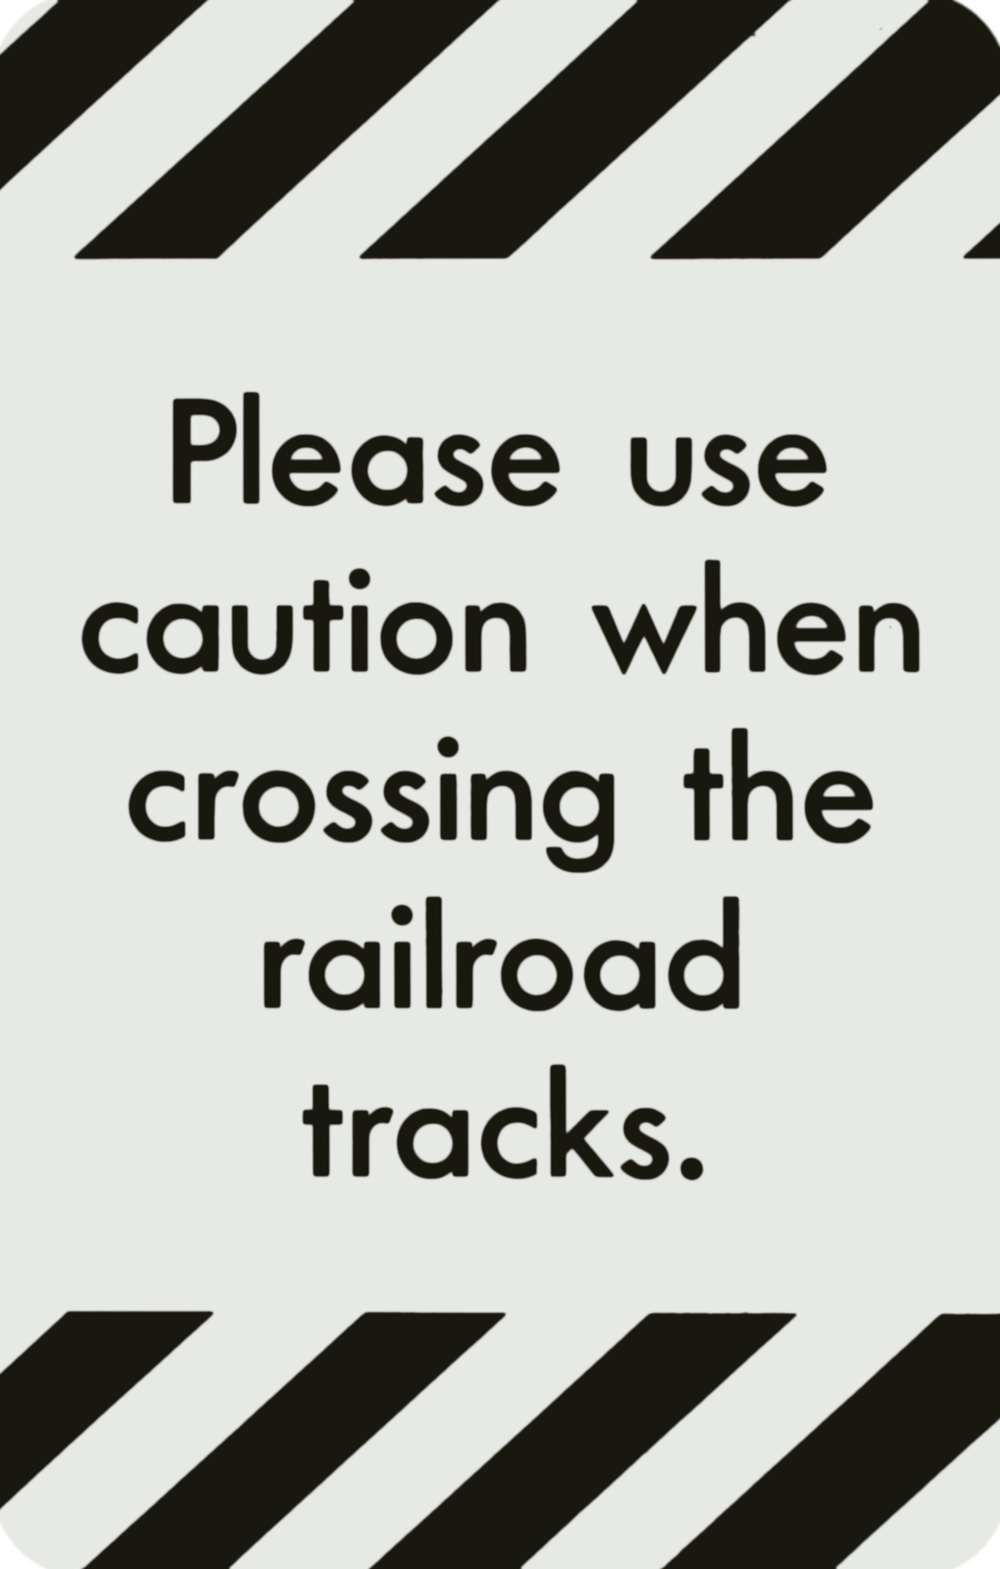 Please Use Caution.png